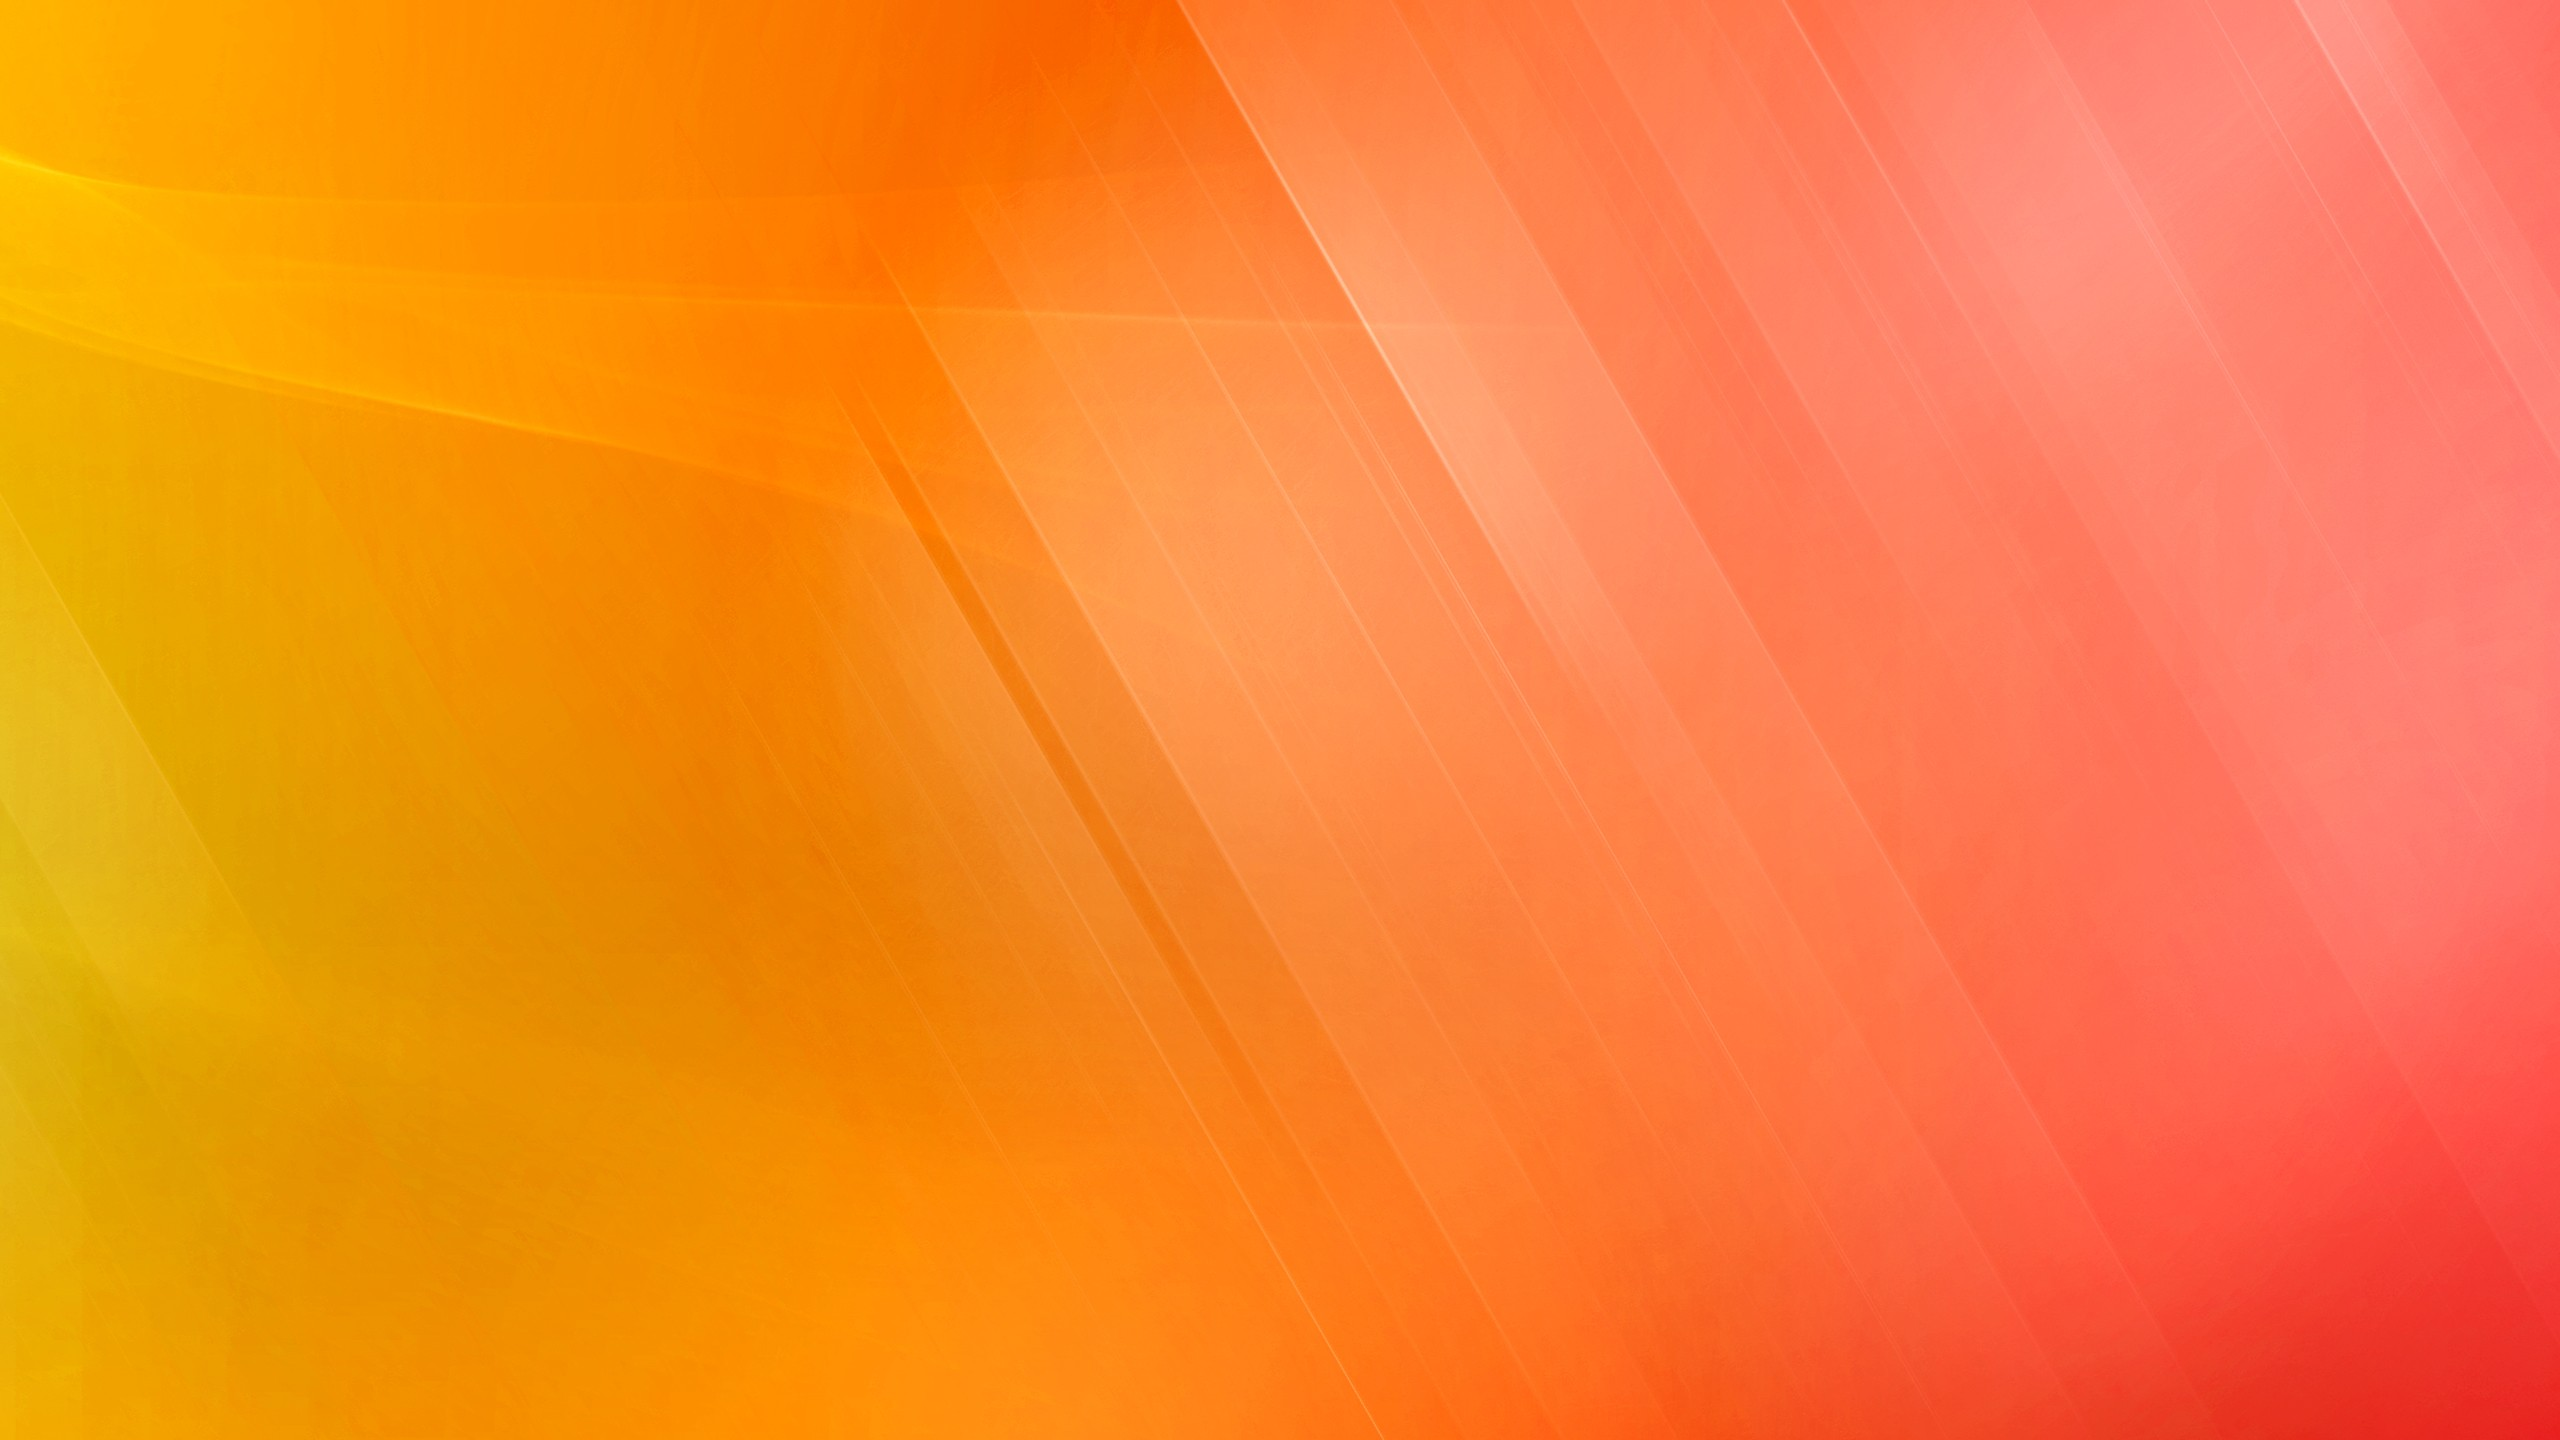 Colorful Hd Iphone Wallpapers Wallpaper Lines Orange Yellow Hd Abstract 15591